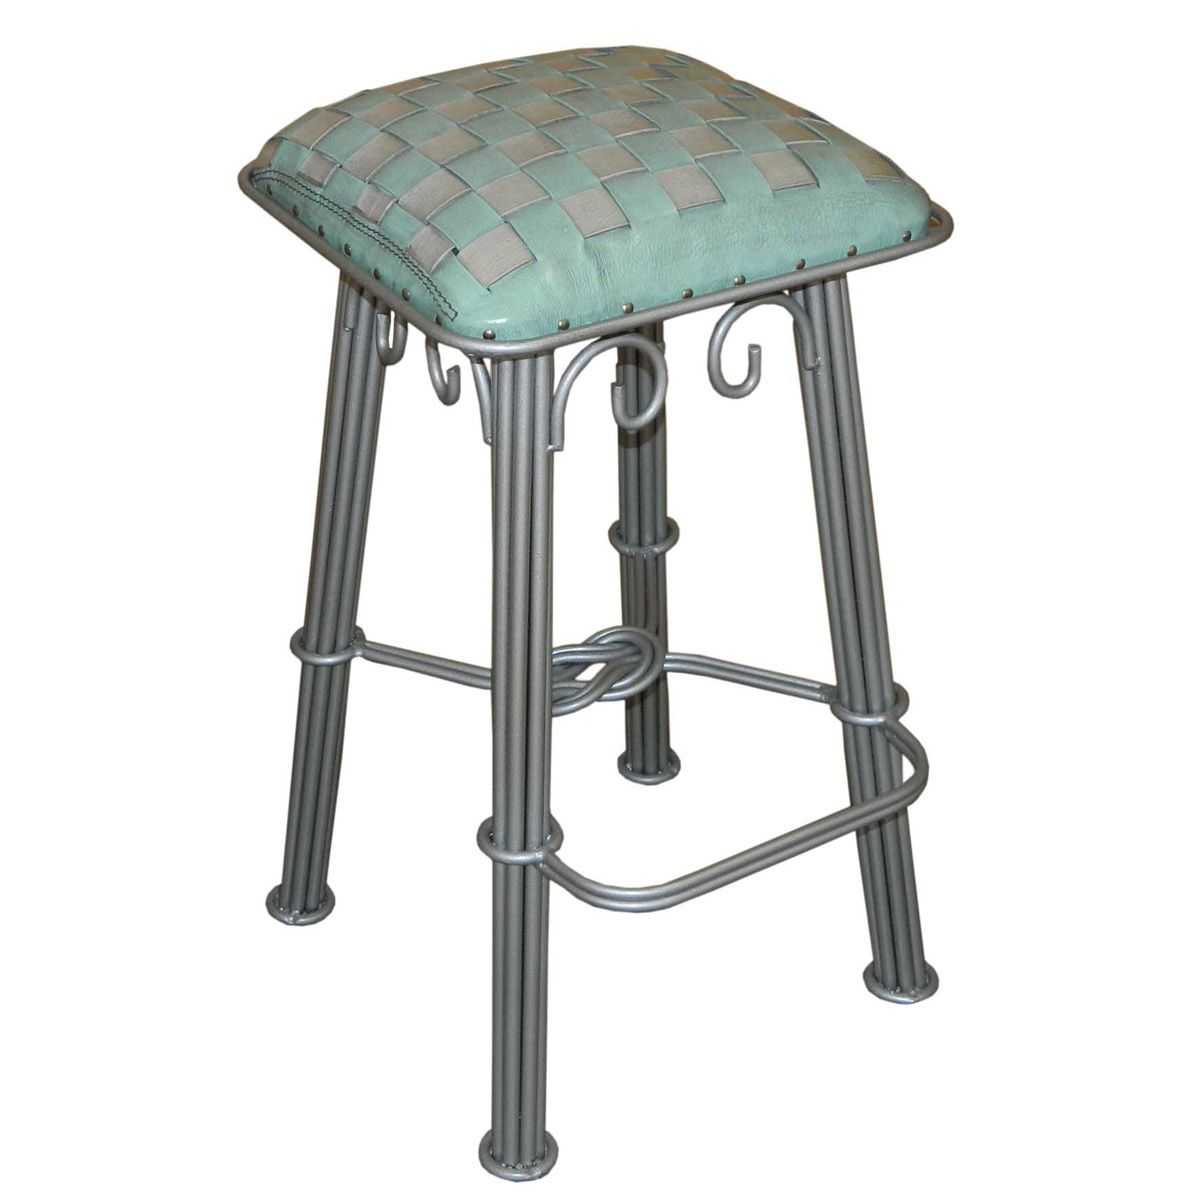 Ash Turquoise Braided Leather Counter Stool - Silver Iron